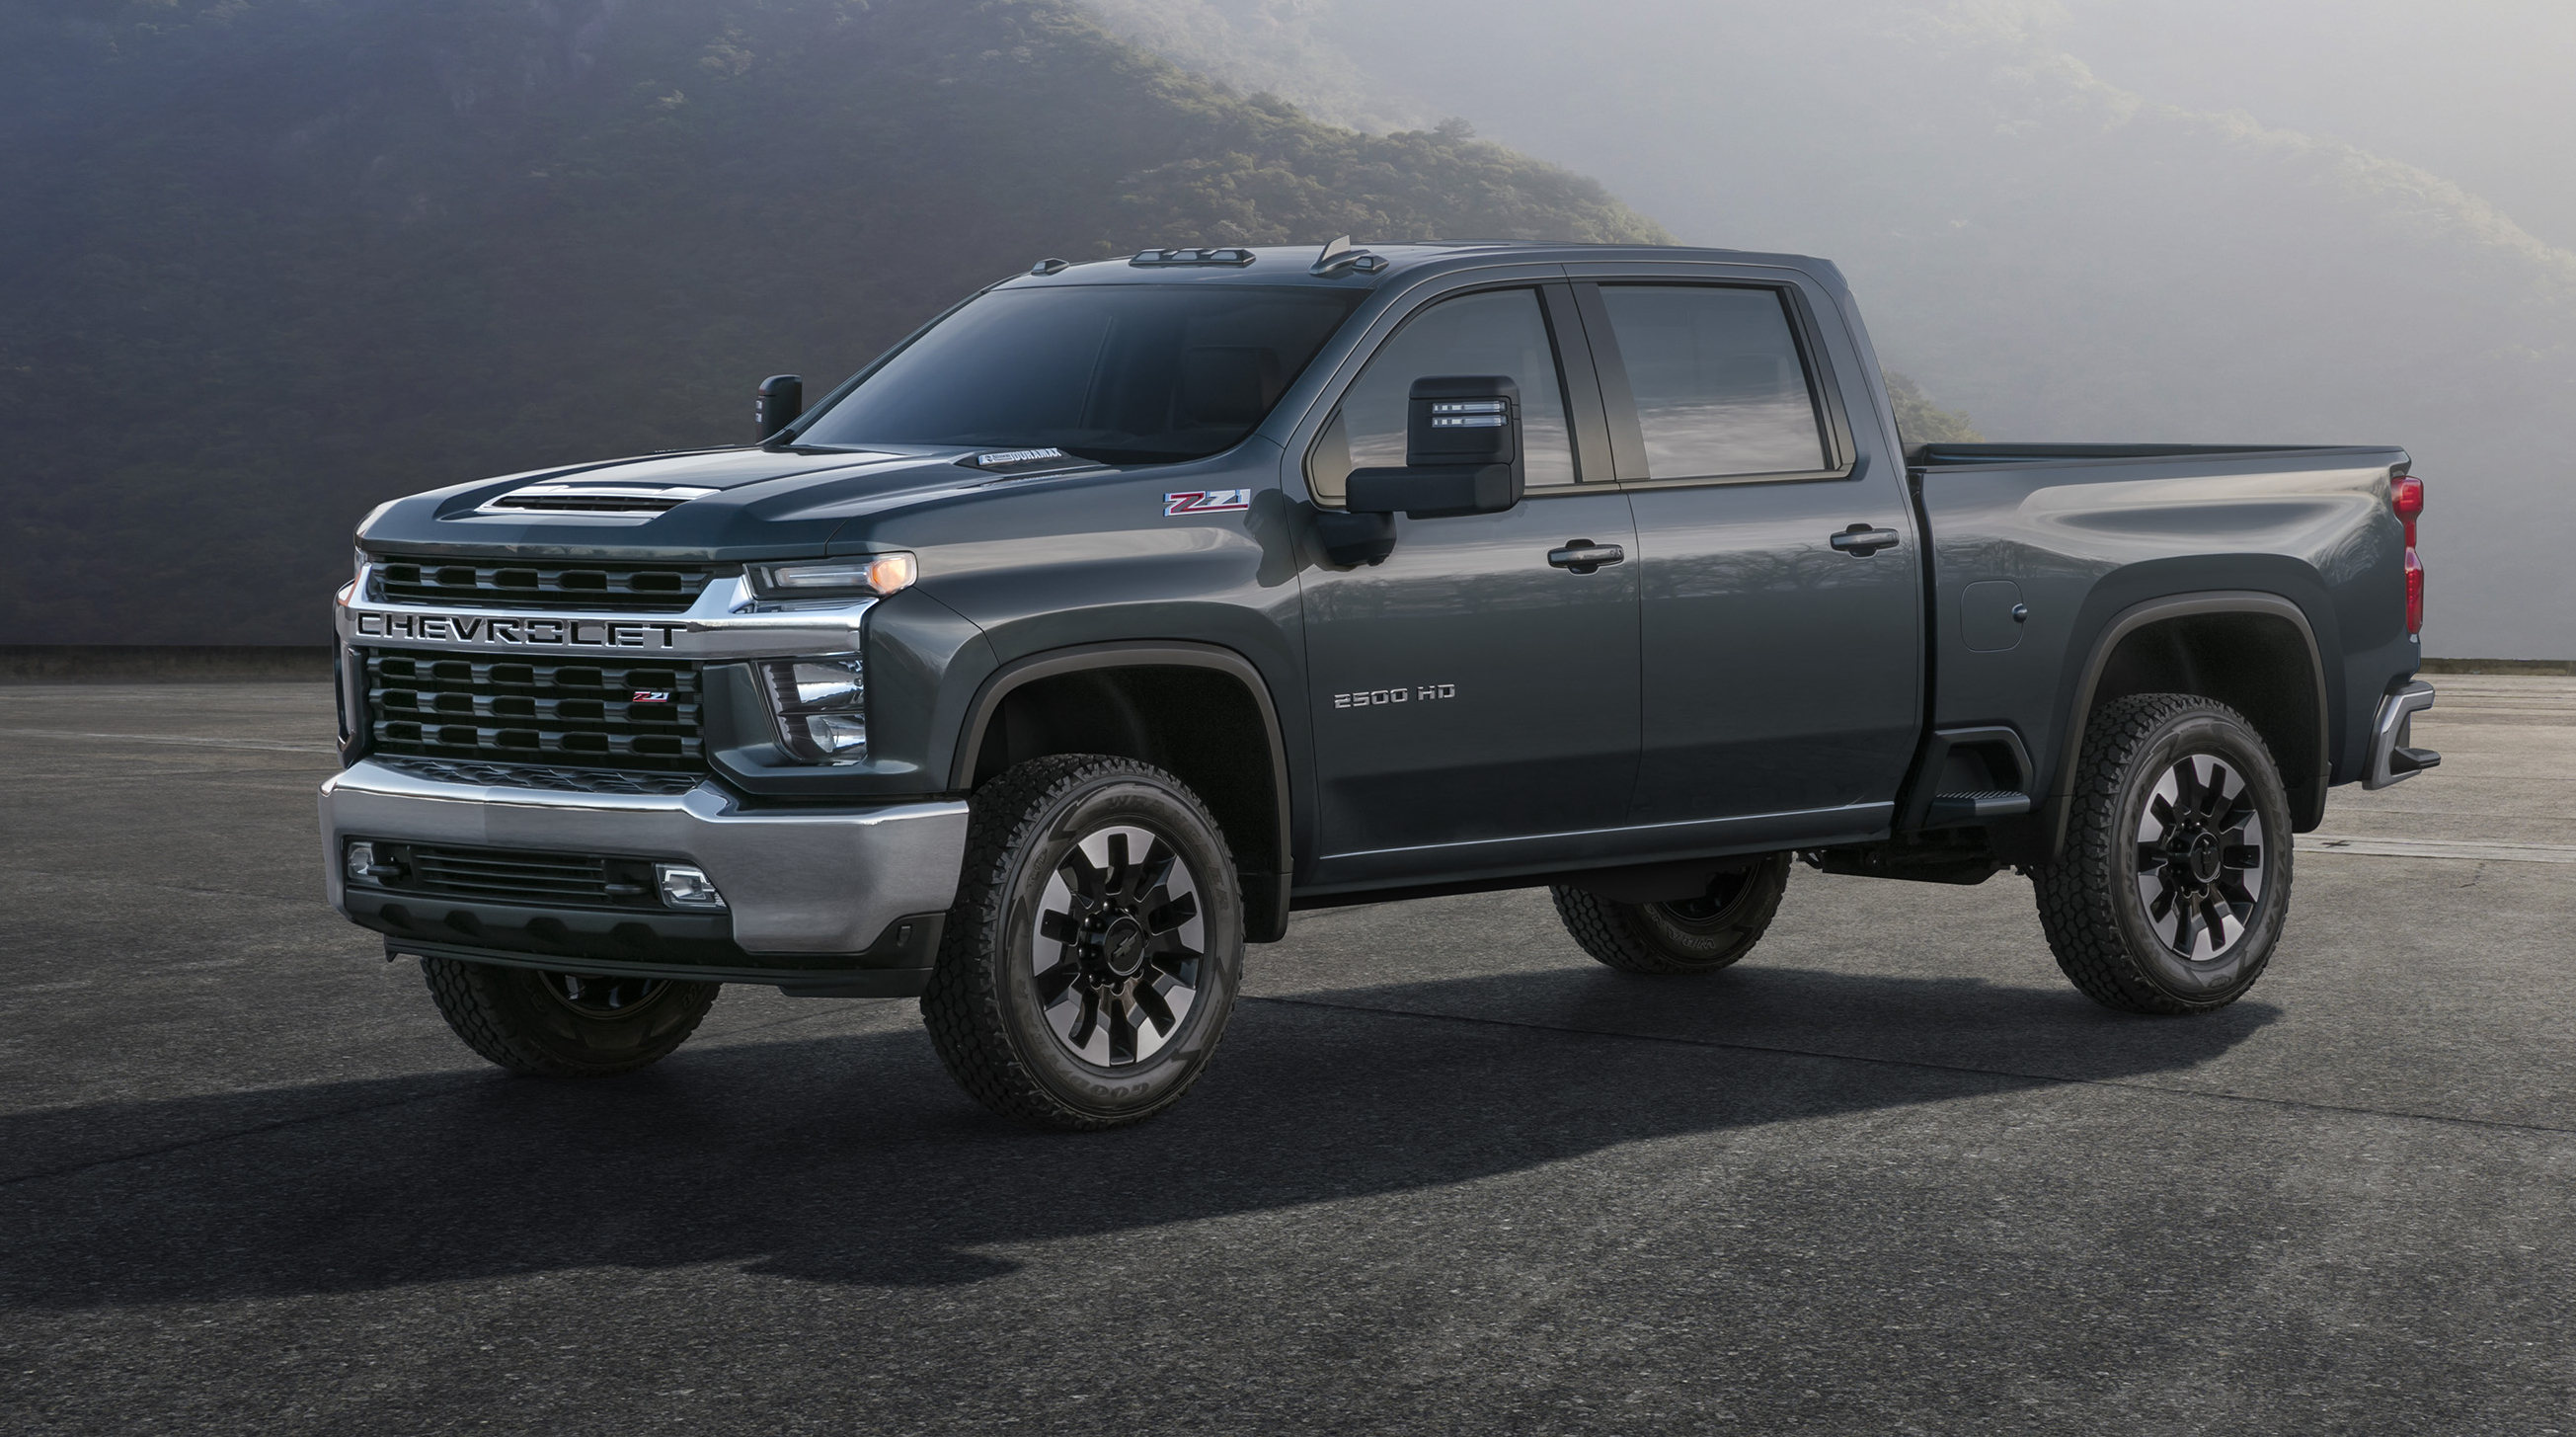 57 The Best 2019 Chevrolet Heavy Duty Review And Release Date